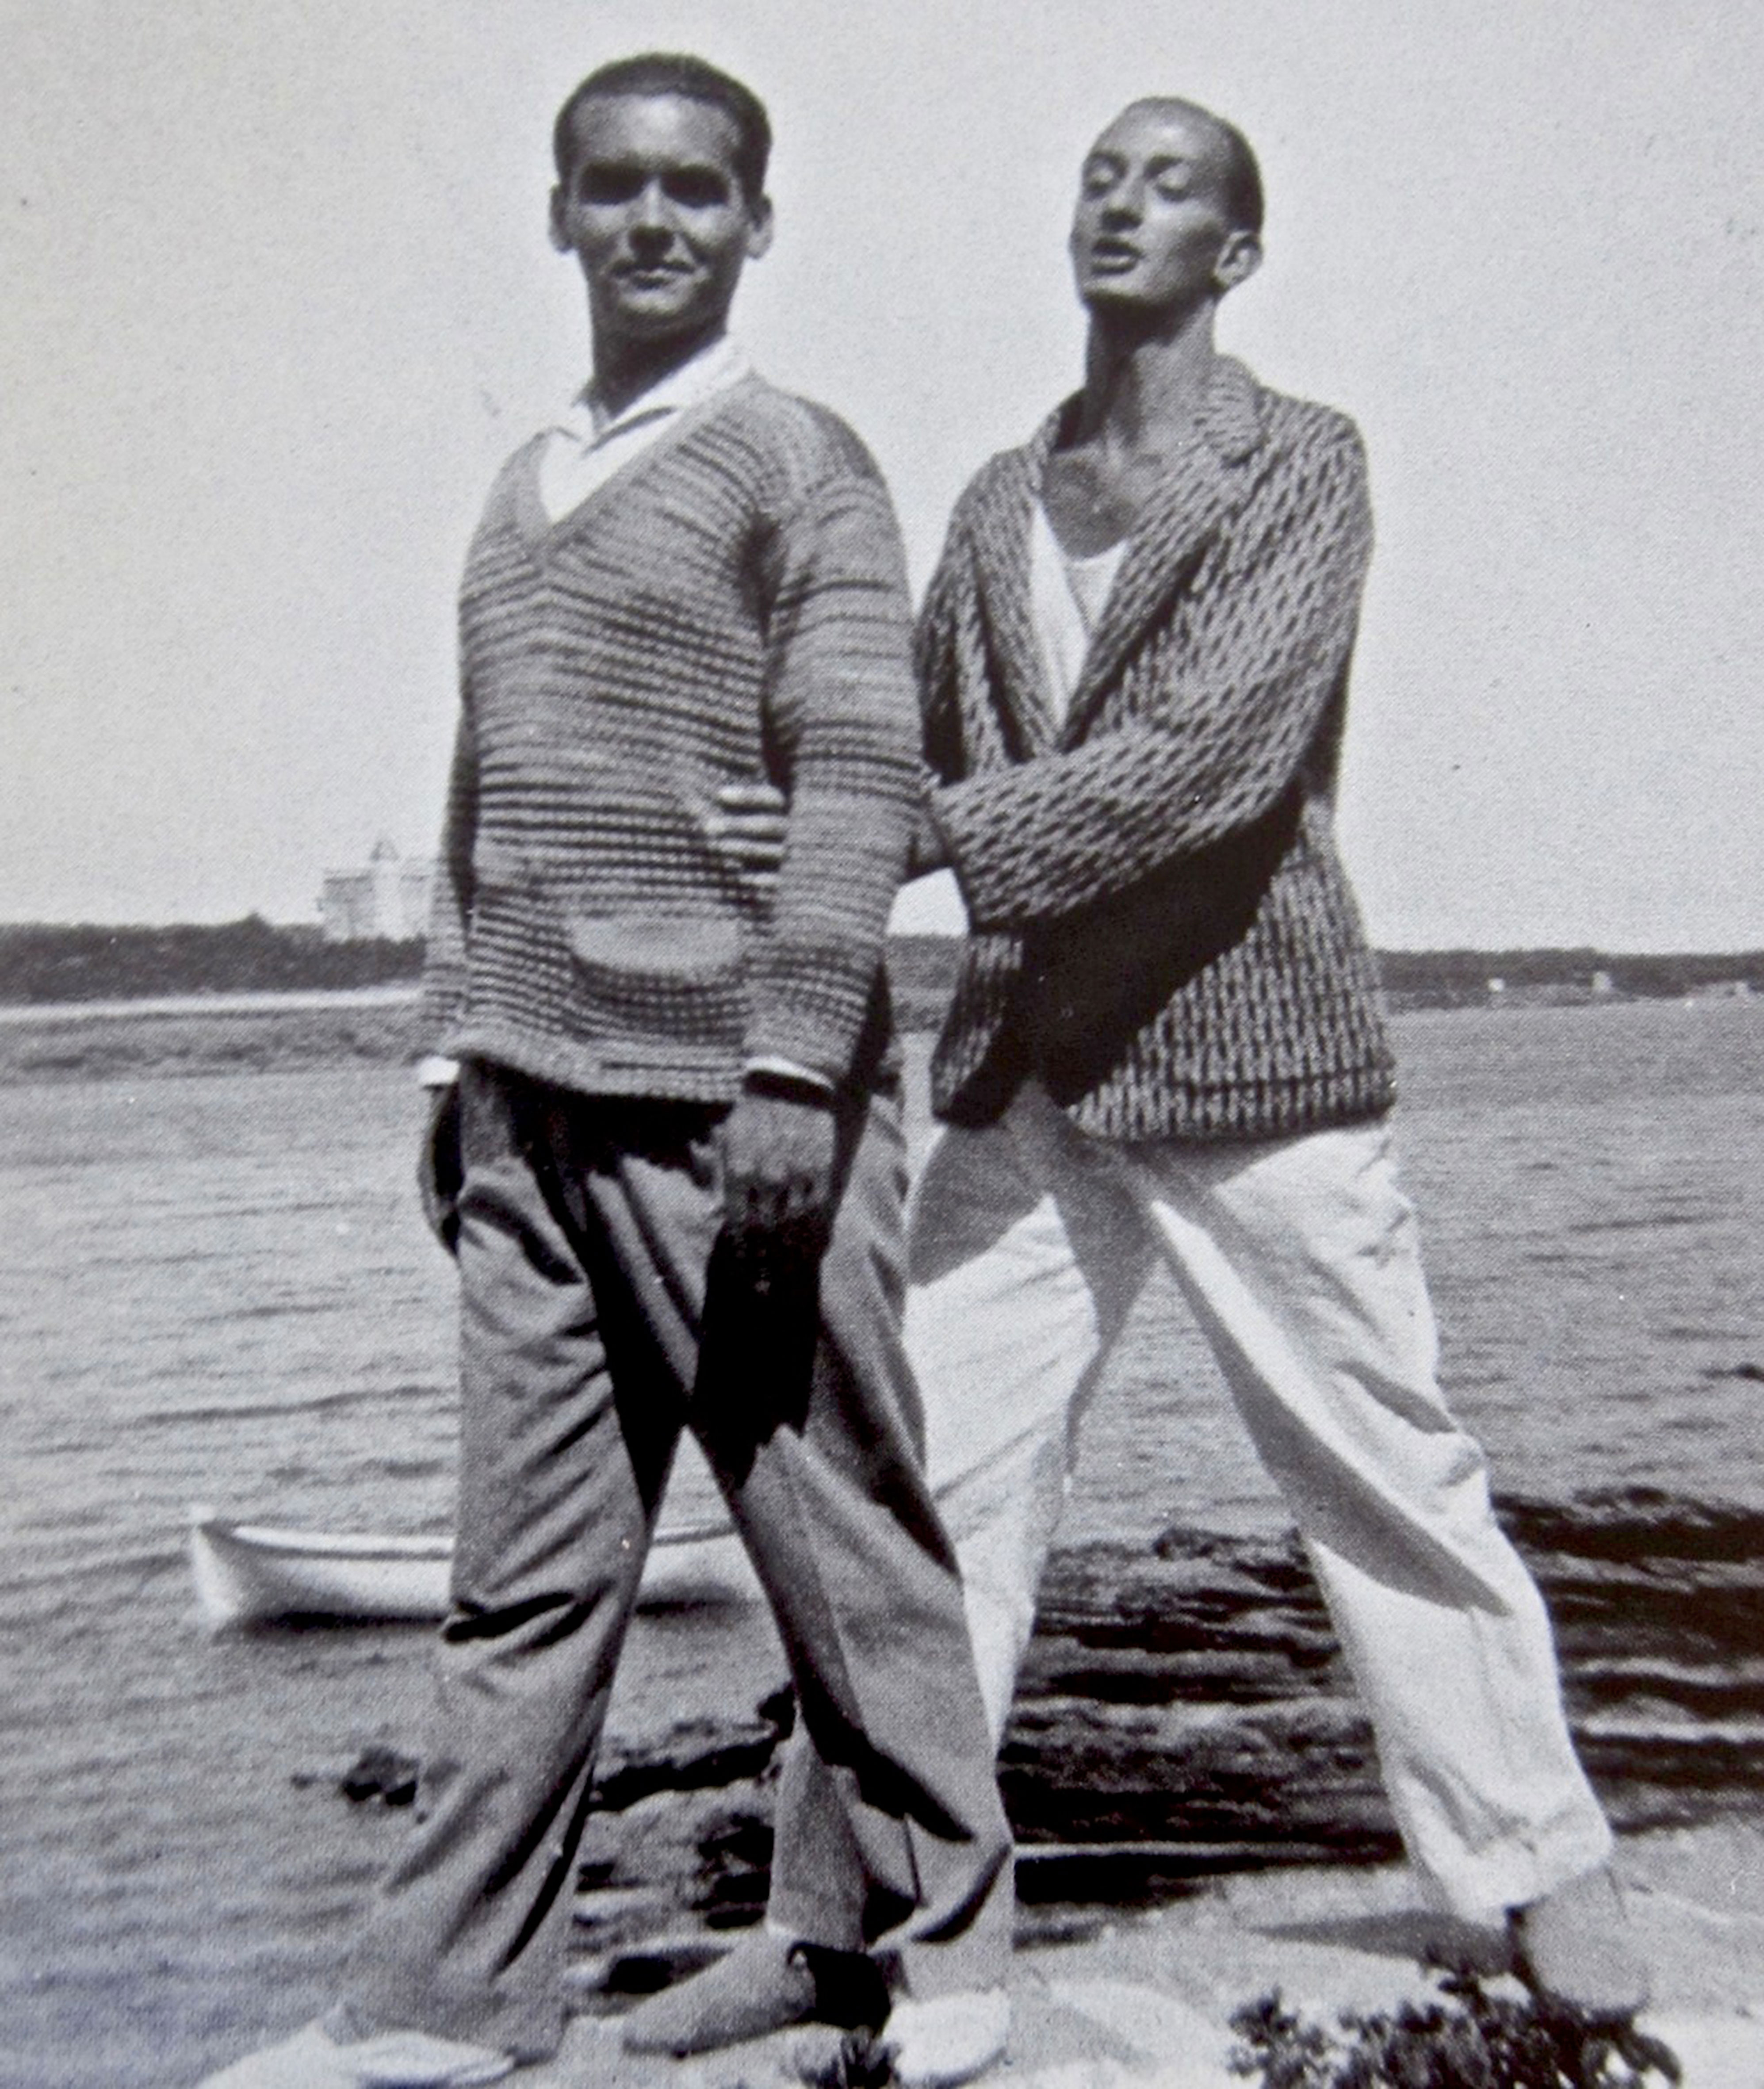 Сальвадор Дали и Фредерико Гарсиа Лорка в Salvador Dalí and Federico García Lorca in Cadaqués. Found in the Collection of Fundació Gala - Salvador Dali, Figueres. (Photo by Fine Art Images/Heritage Images/Getty Images)